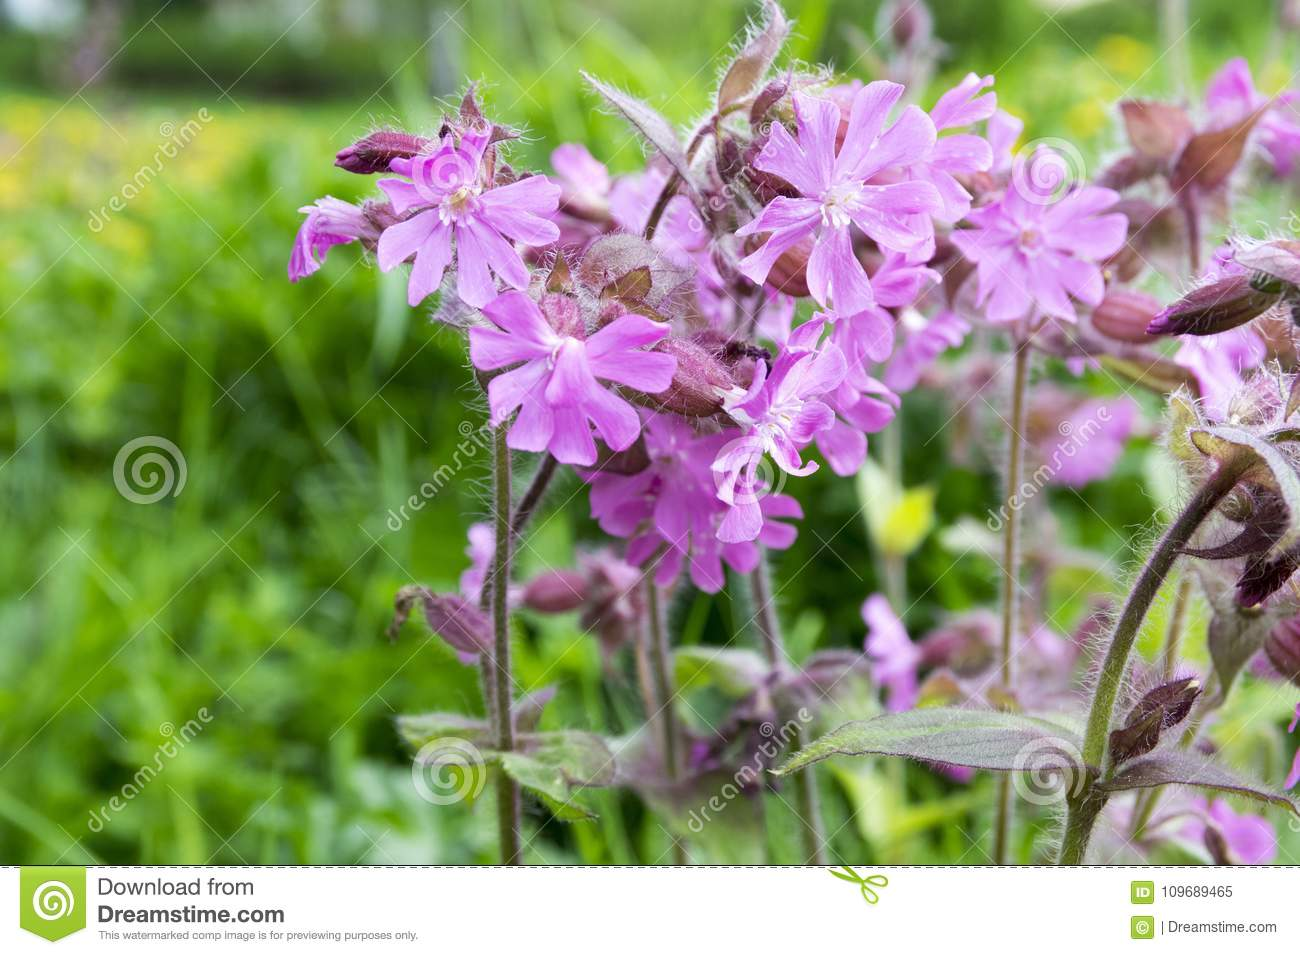 Silene Dioica Meadows Pink Flower In Bloom Stock Image Image Of